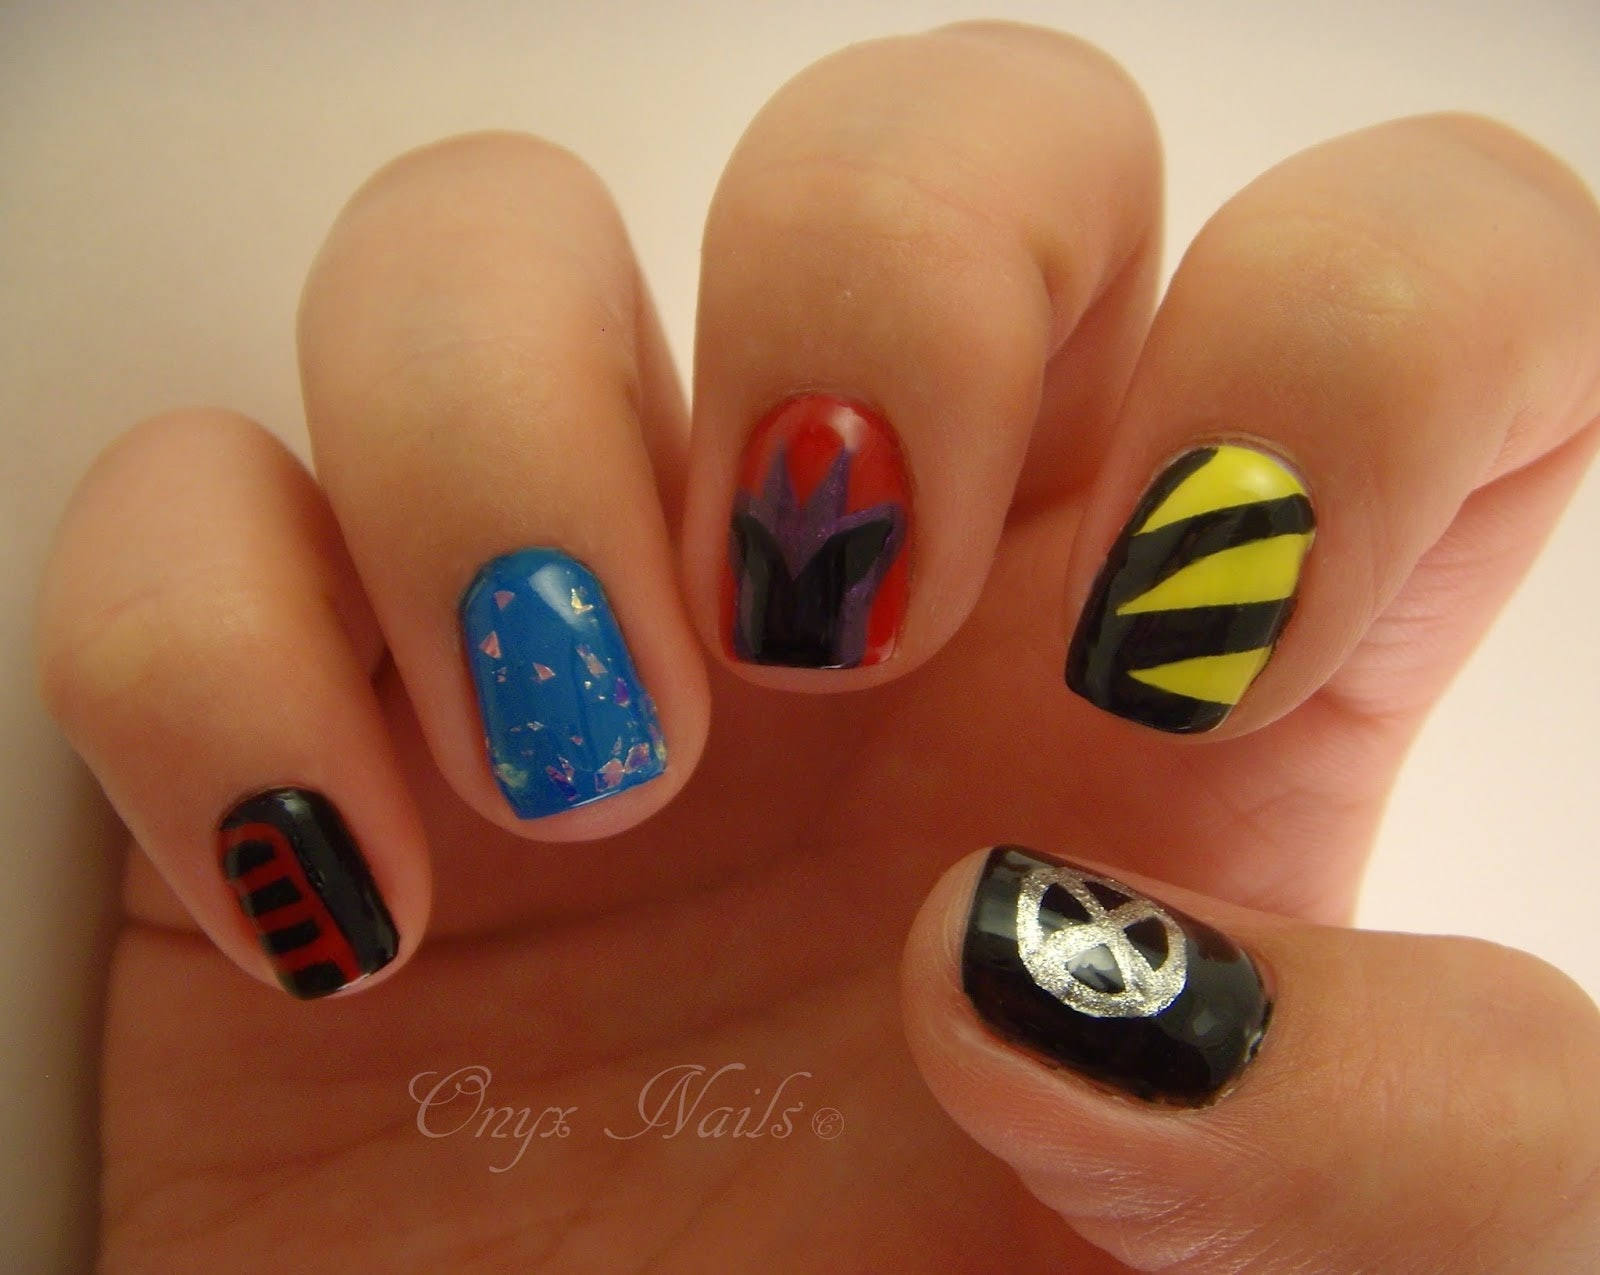 5 Movie Themed Nail Art Ideas From \'TFIOS\' To \'TMNT\' To Let Everyone ...